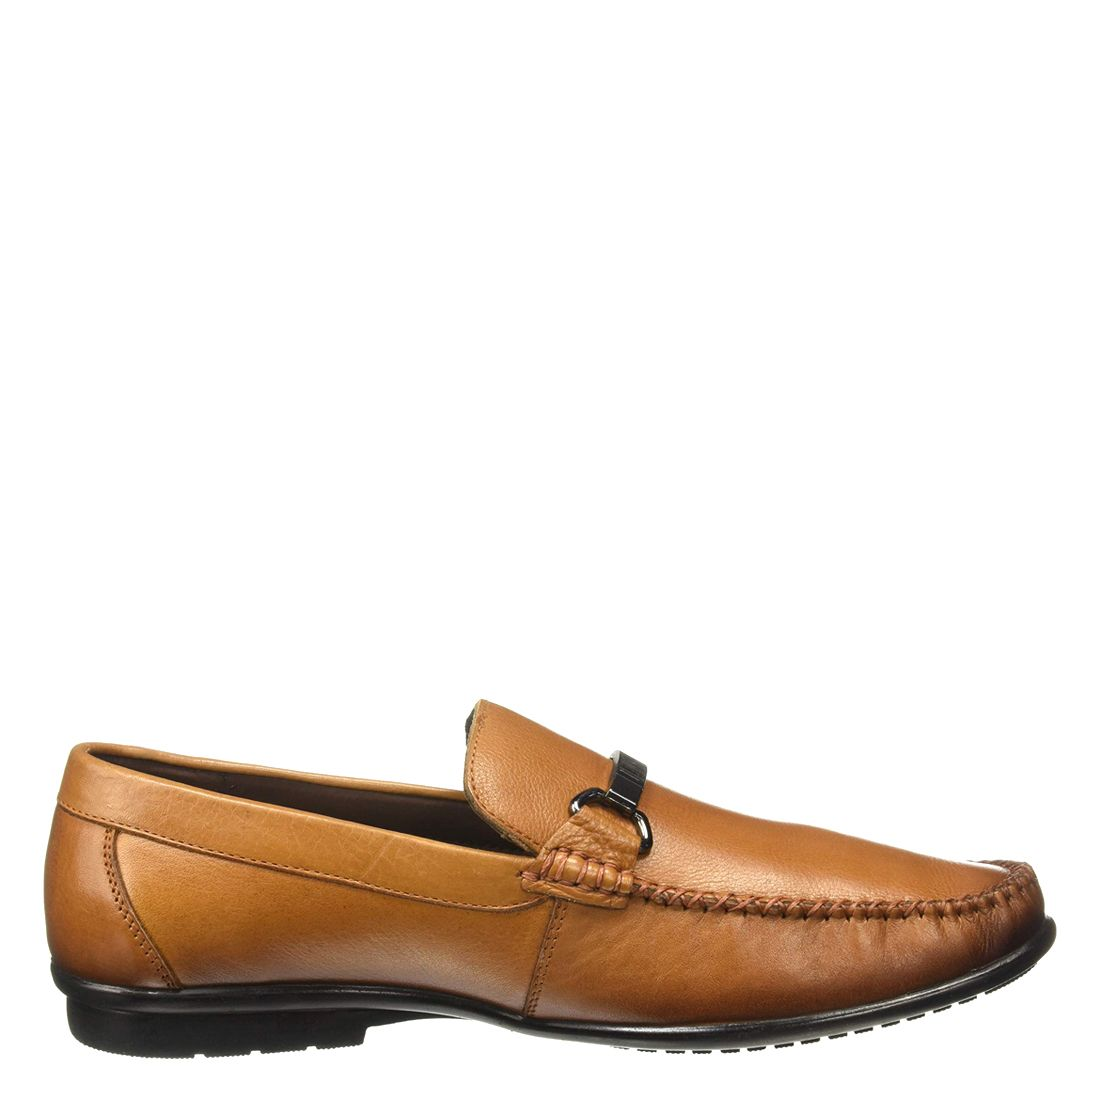 LEECOOPER TAN CASUAL LOAFERS FOR MEN LC2339B